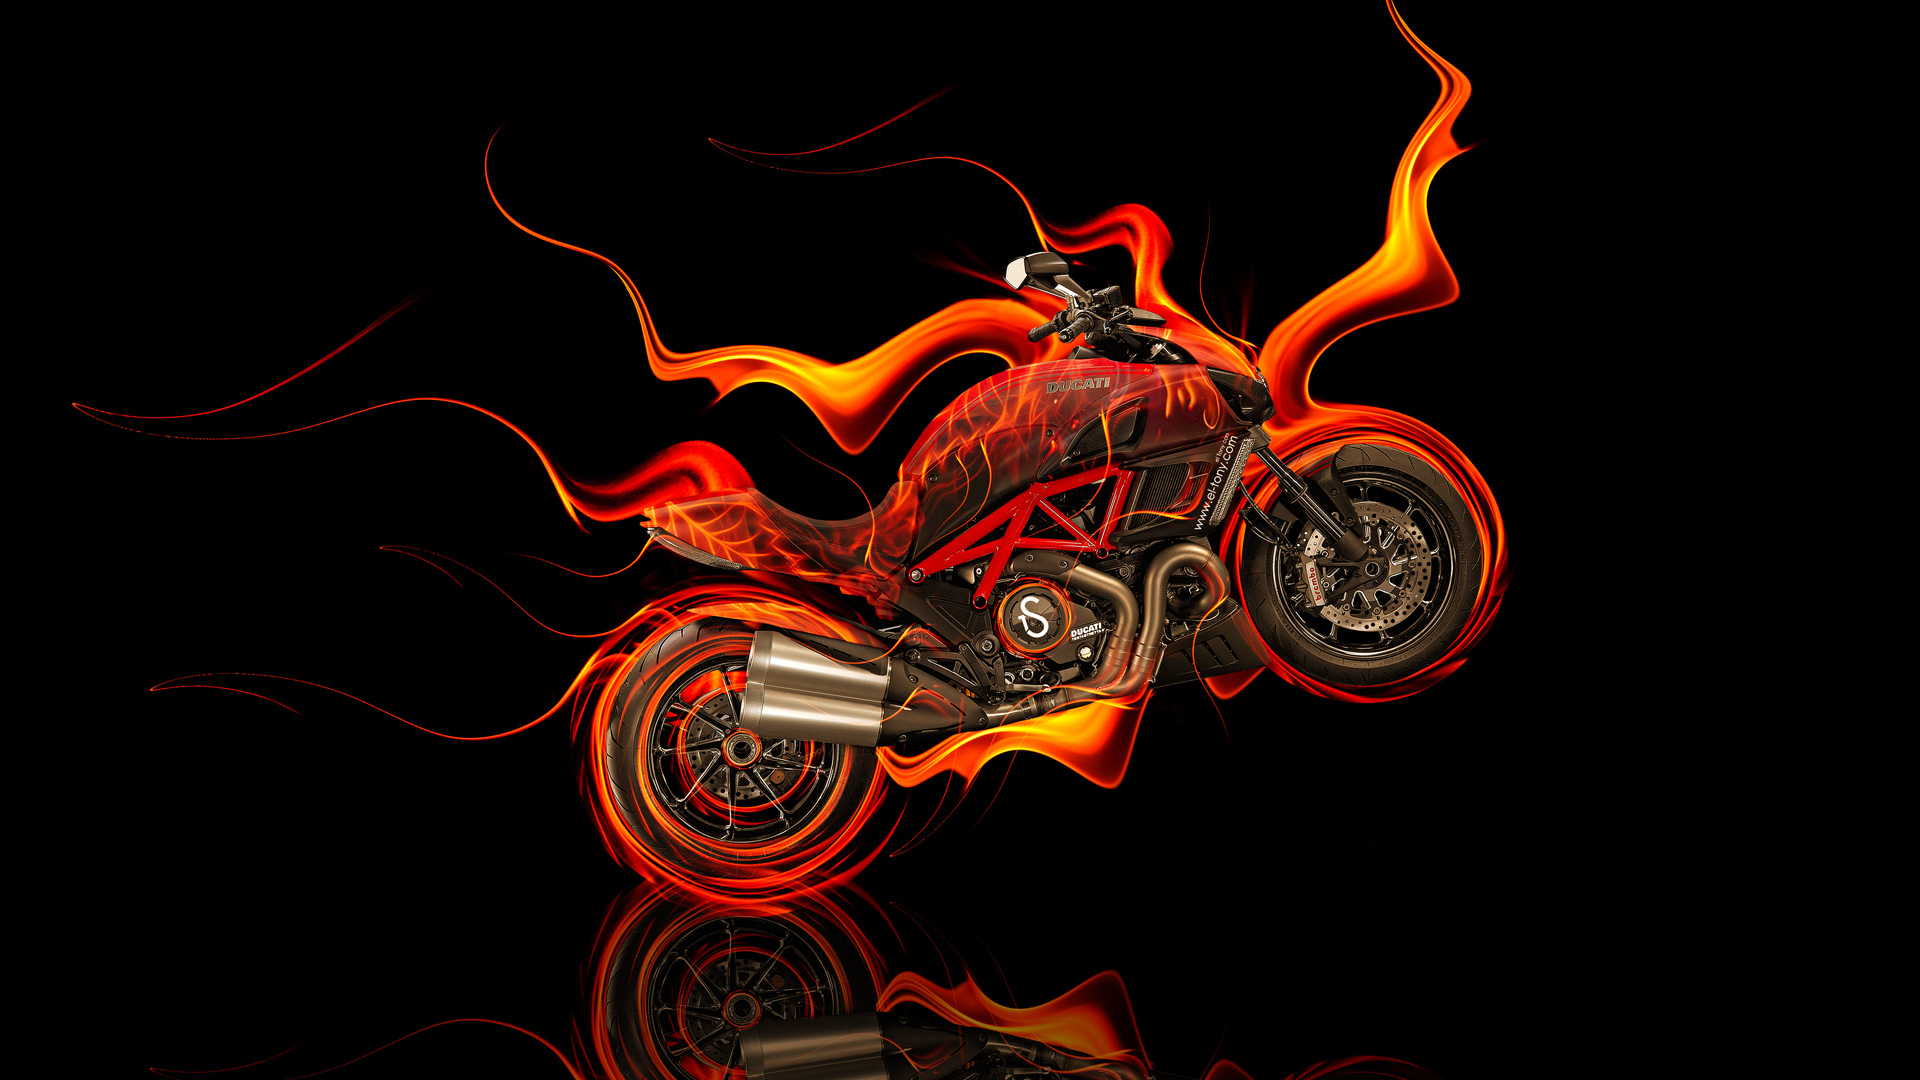 Incroyable Moto Ducati Diavel Side Fire Abstract Bike 2014